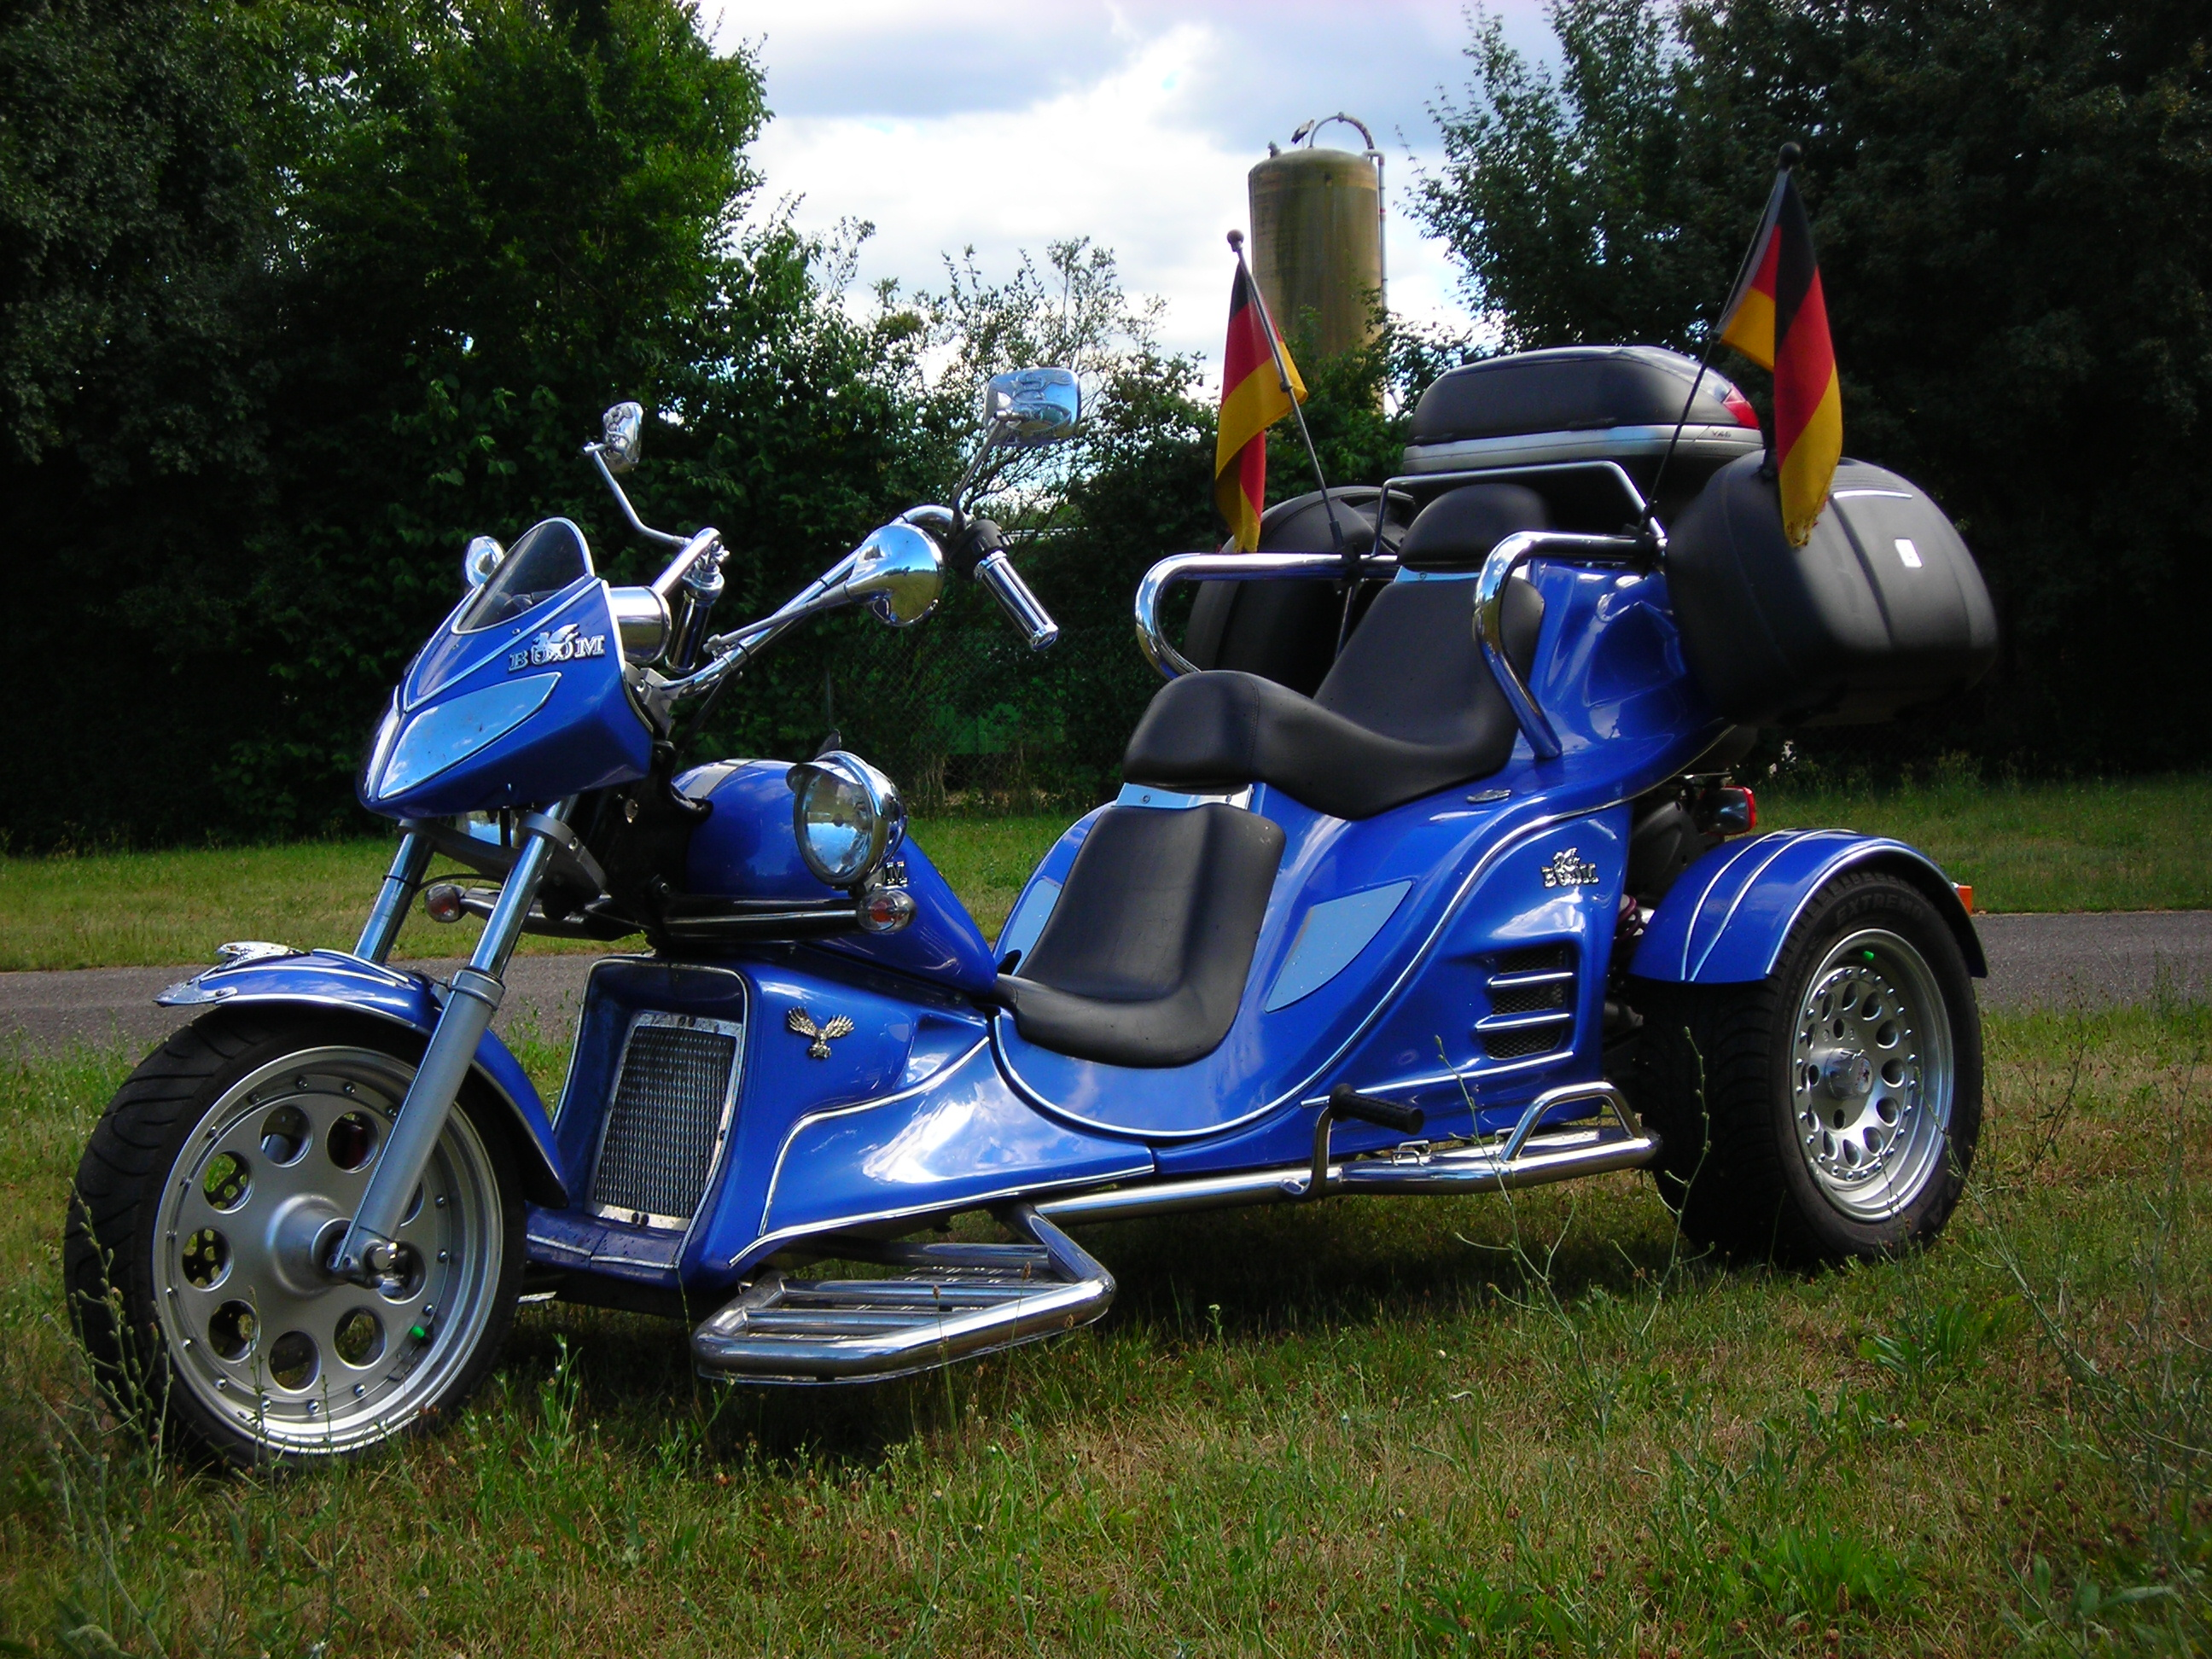 boom trikes boom trikes fun 500 automatic moto zombdrive com. Black Bedroom Furniture Sets. Home Design Ideas